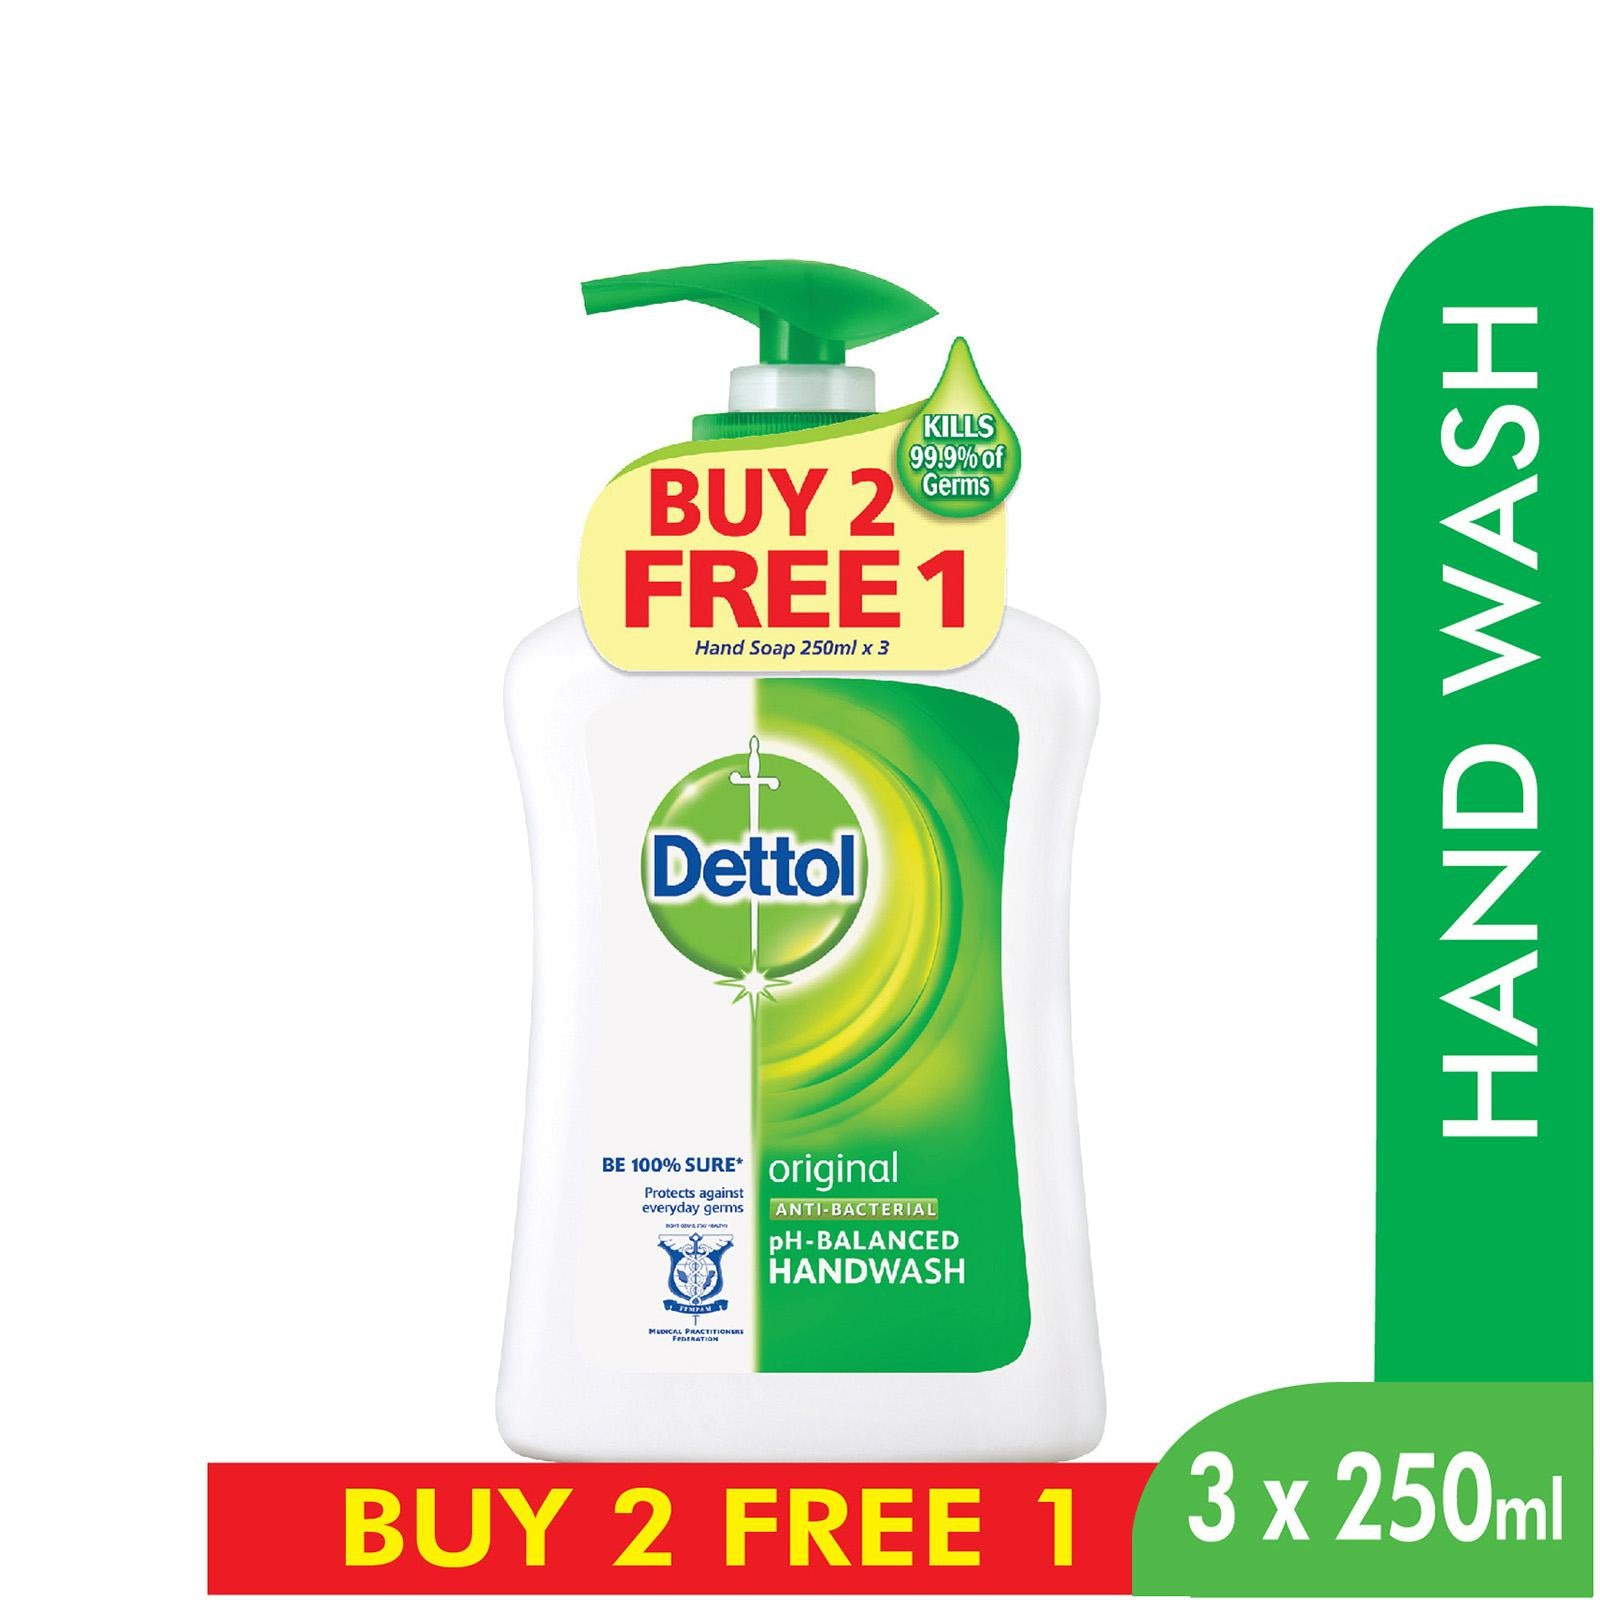 Dettol Original Anti-Bacterial Hand Wash Buy 2 Free 1 3 x 250 ml